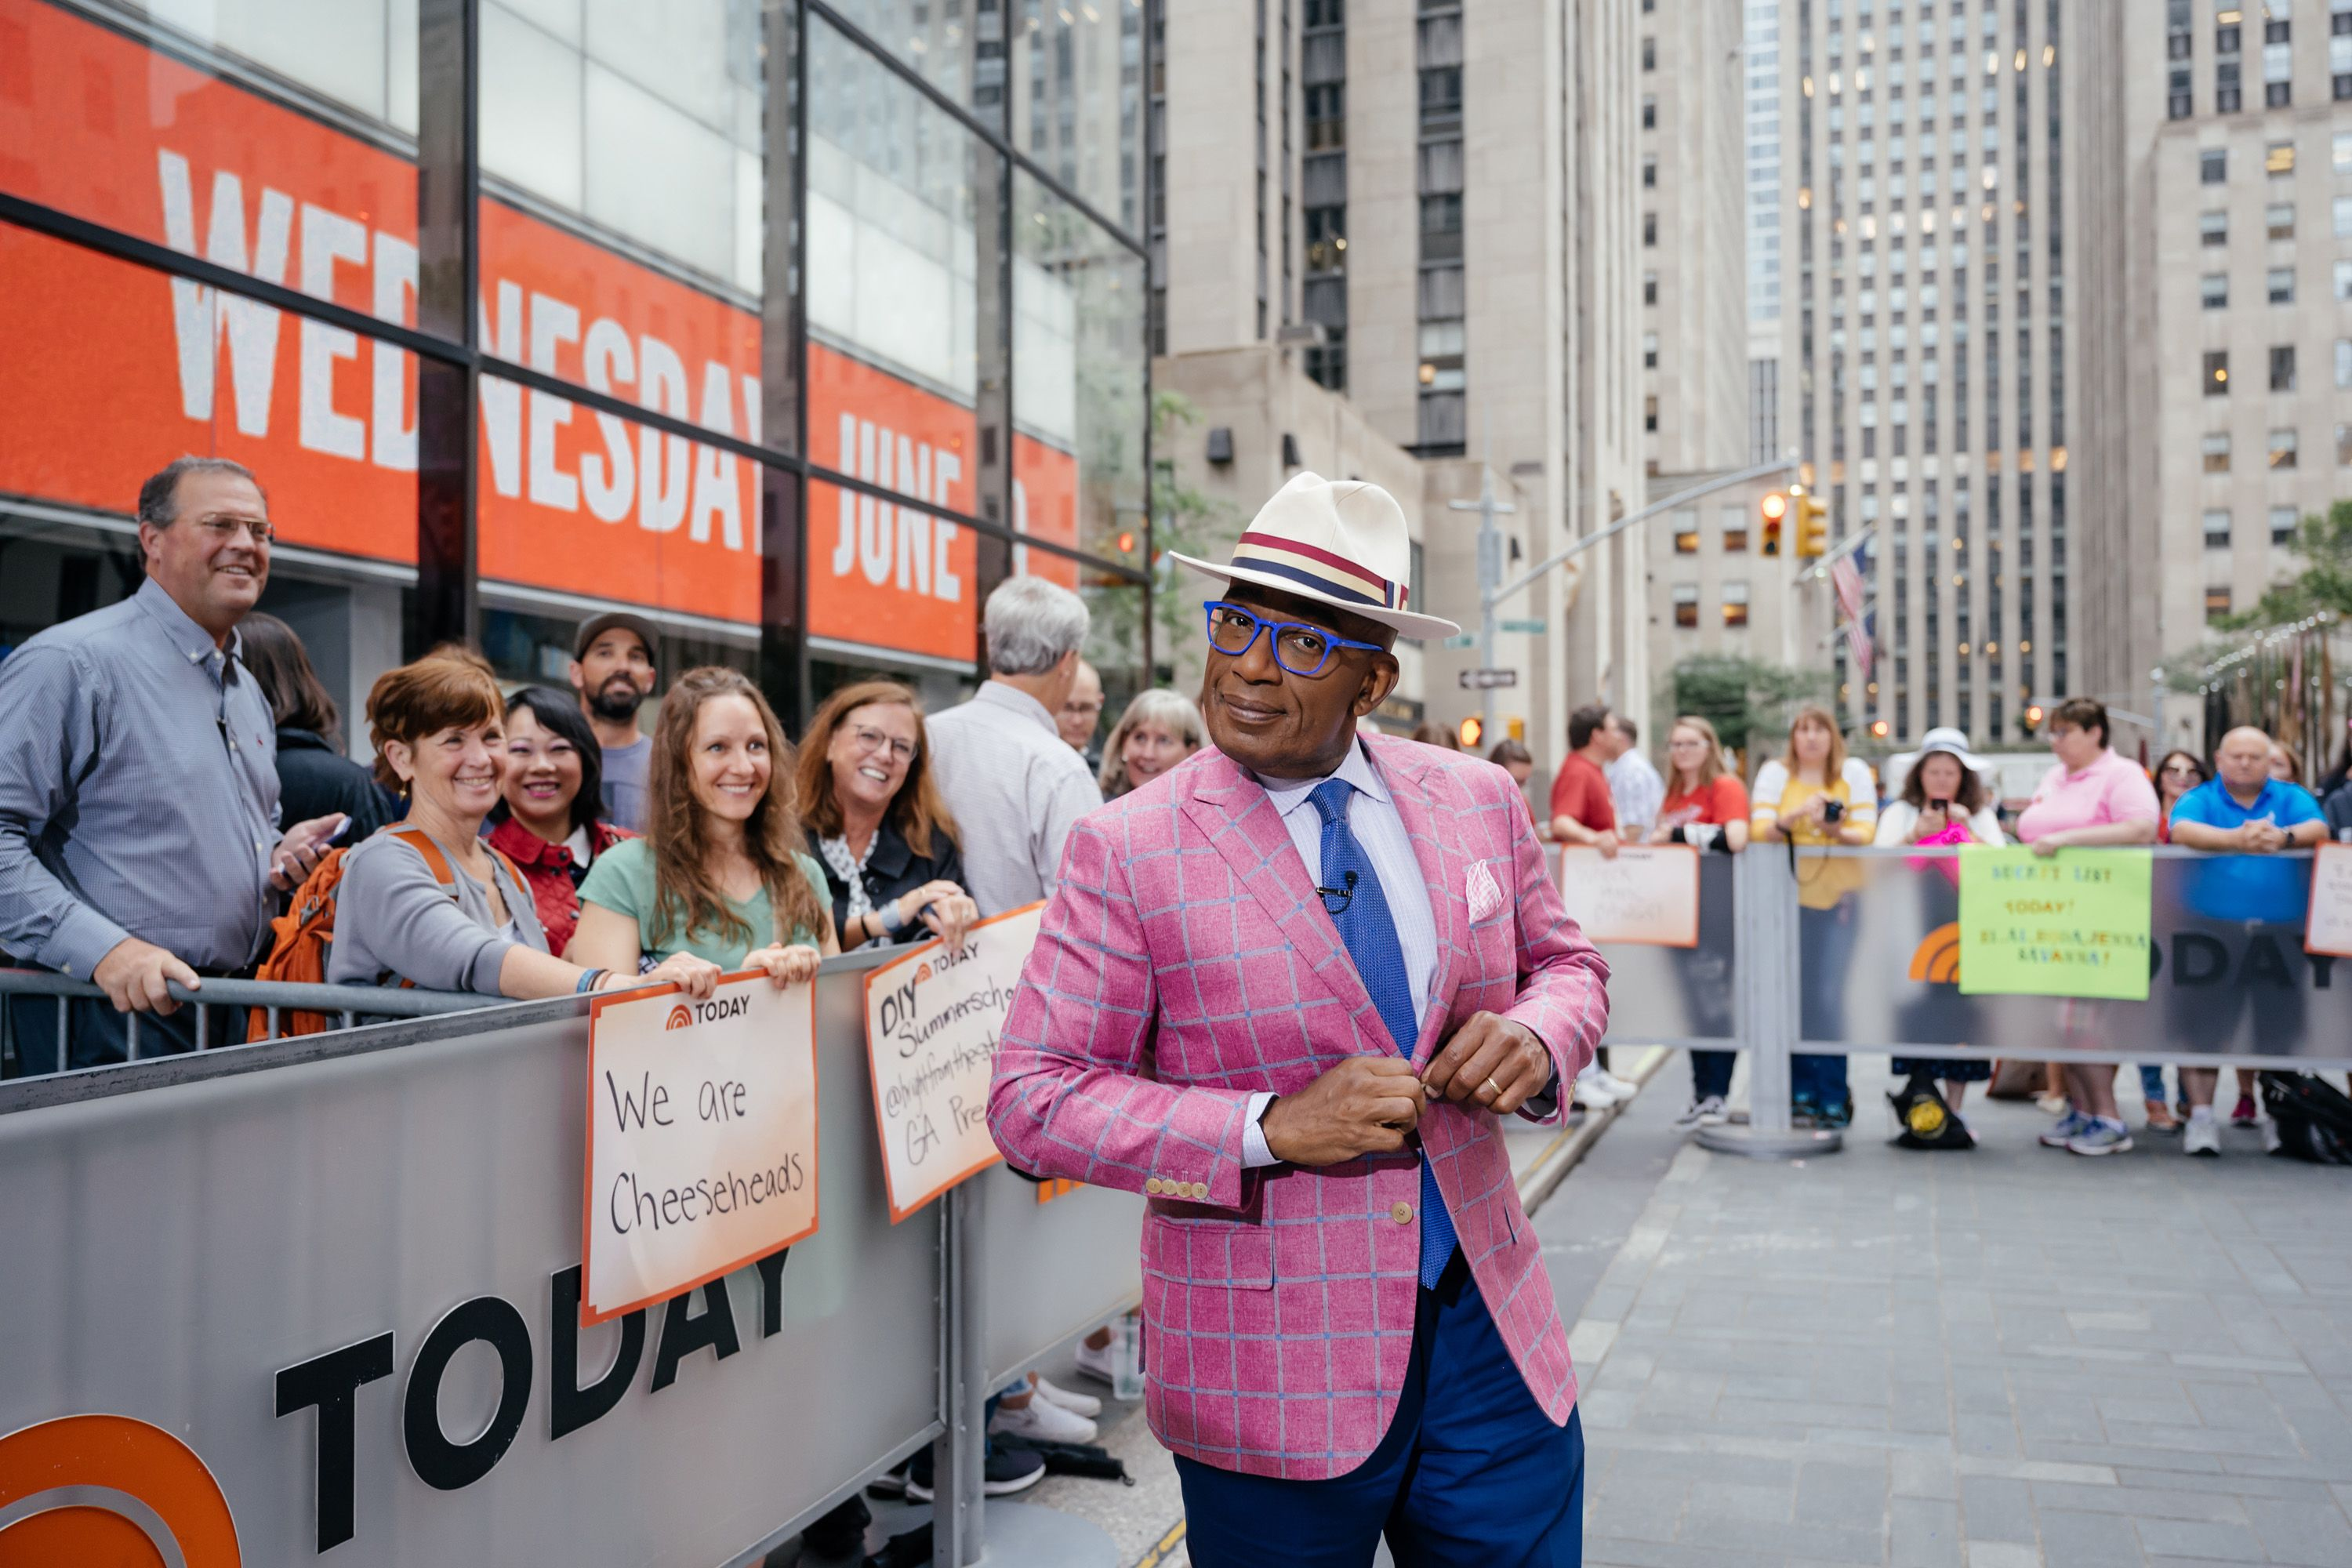 Where Is Al Roker? Fans Are Starting to Wonder About the 'Today' Show Star's Absence